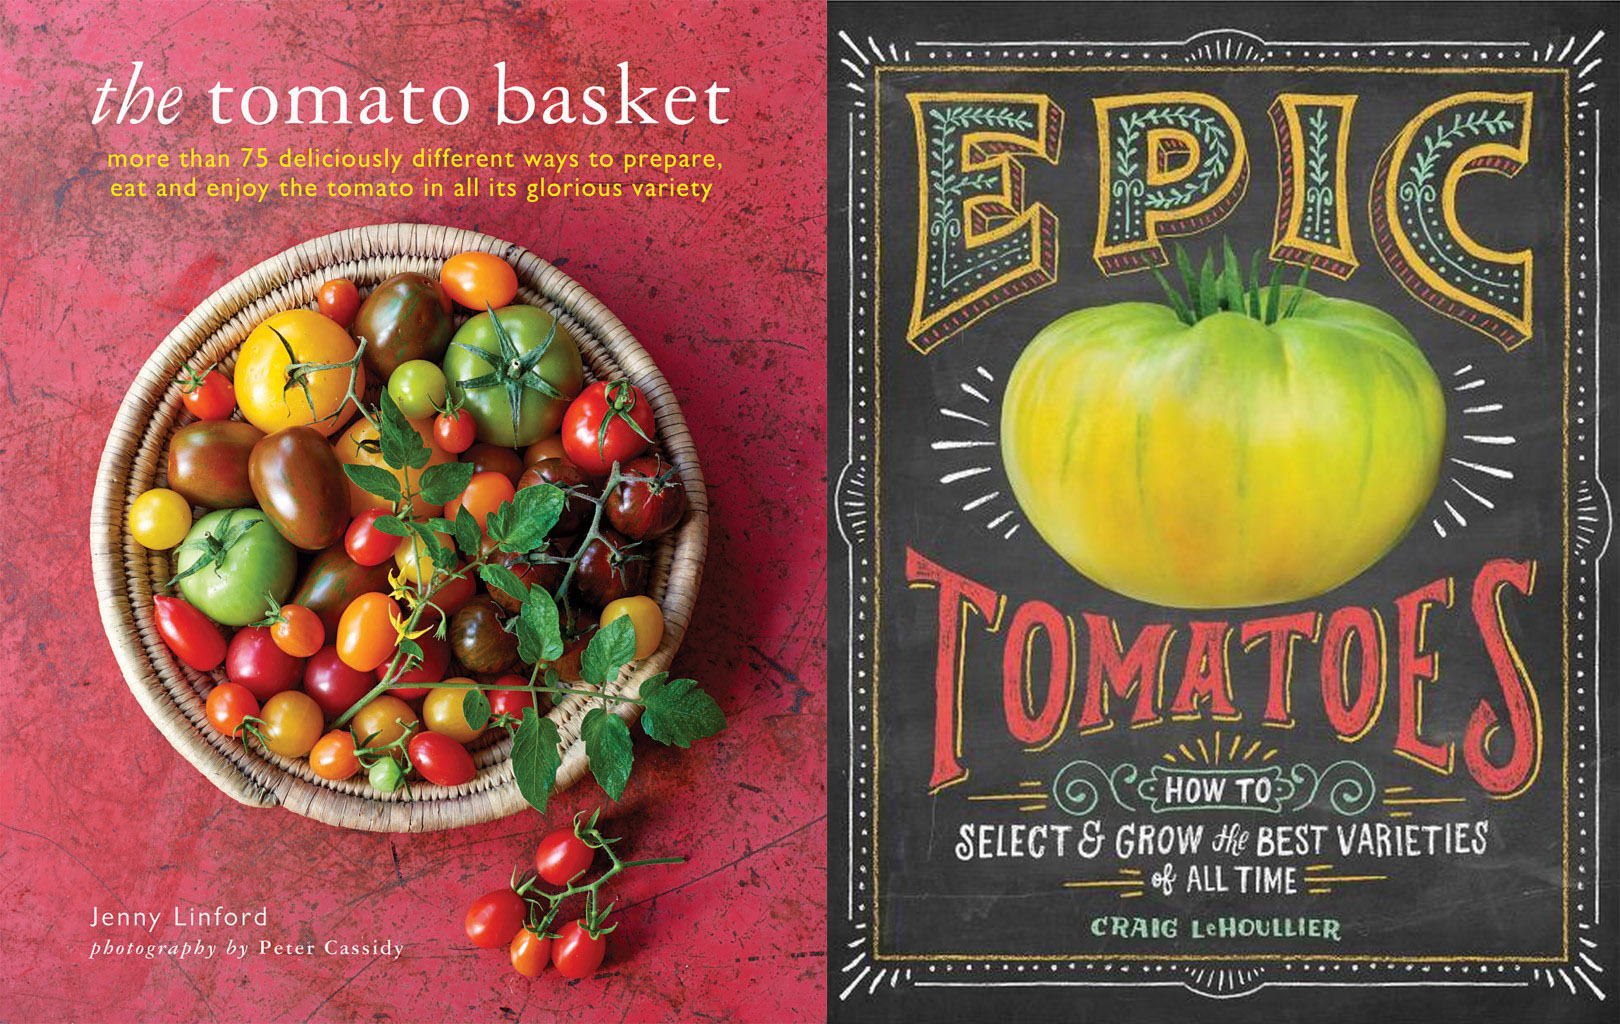 The Tomato Basket by Jenny Linford and Epic Tomatoes by Craig Le Houllier.